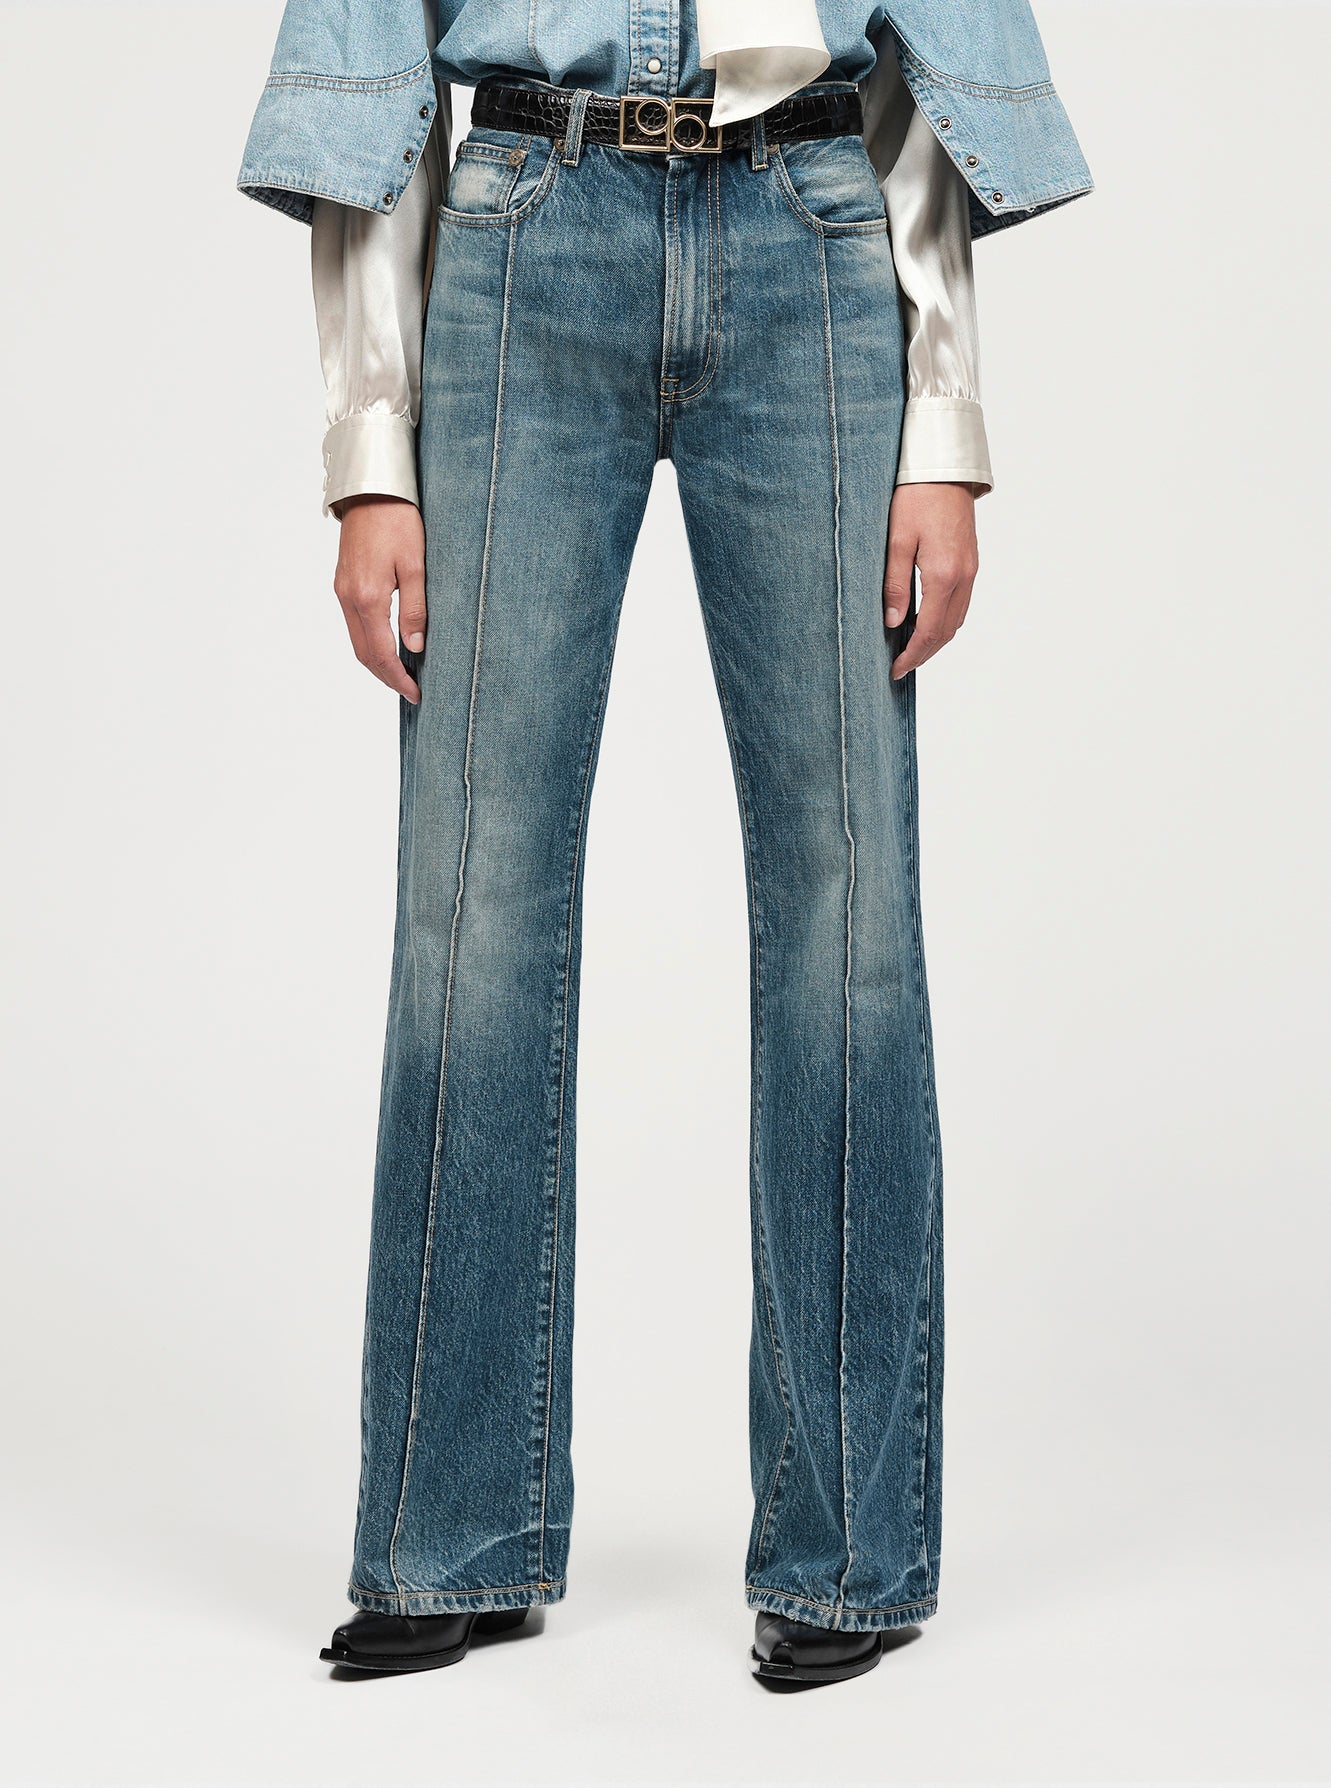 Geometric logo Western washed jeans